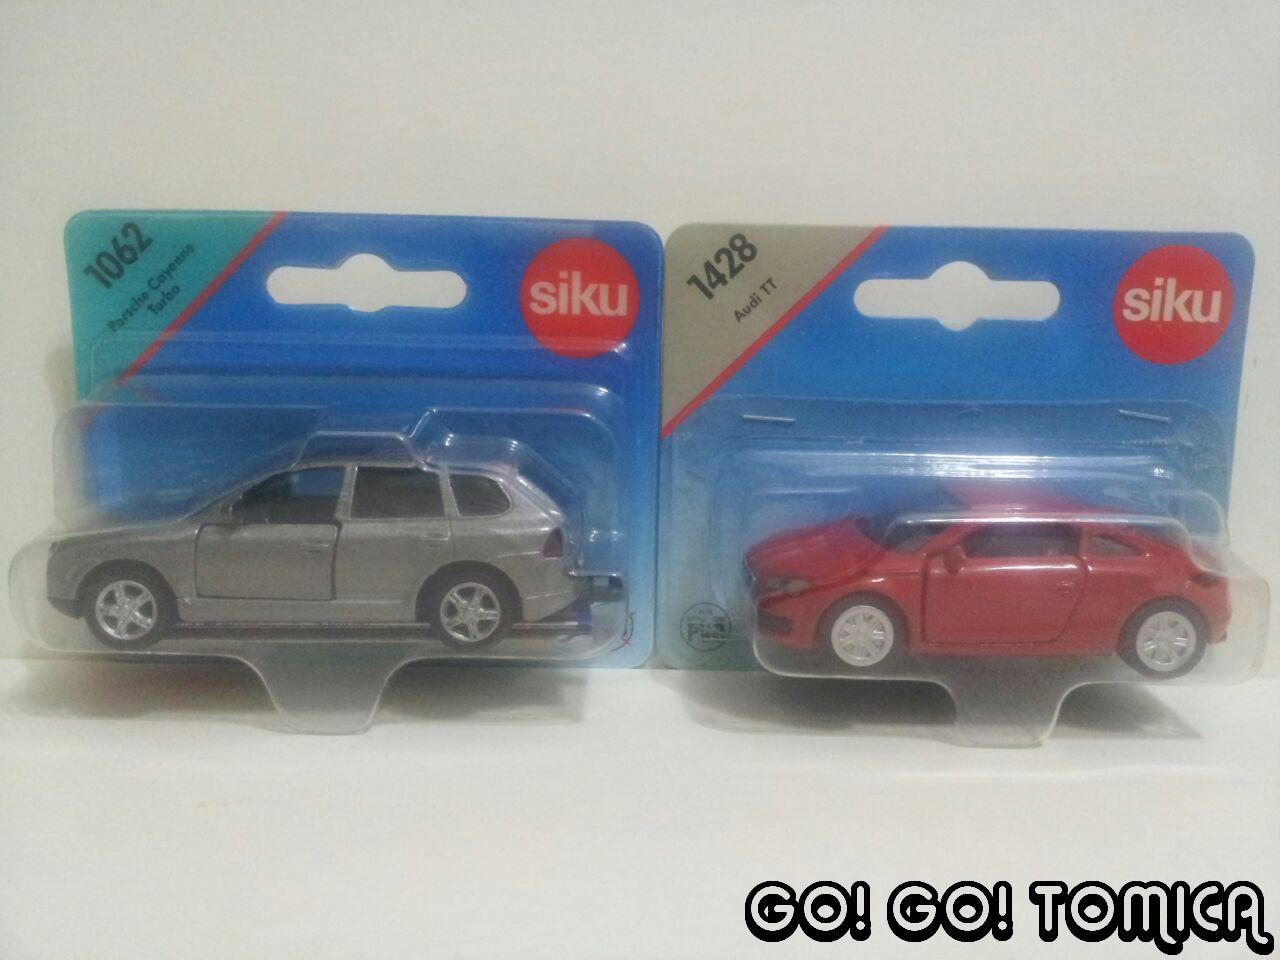 Go Go Tomica The Different Prices Of Siku